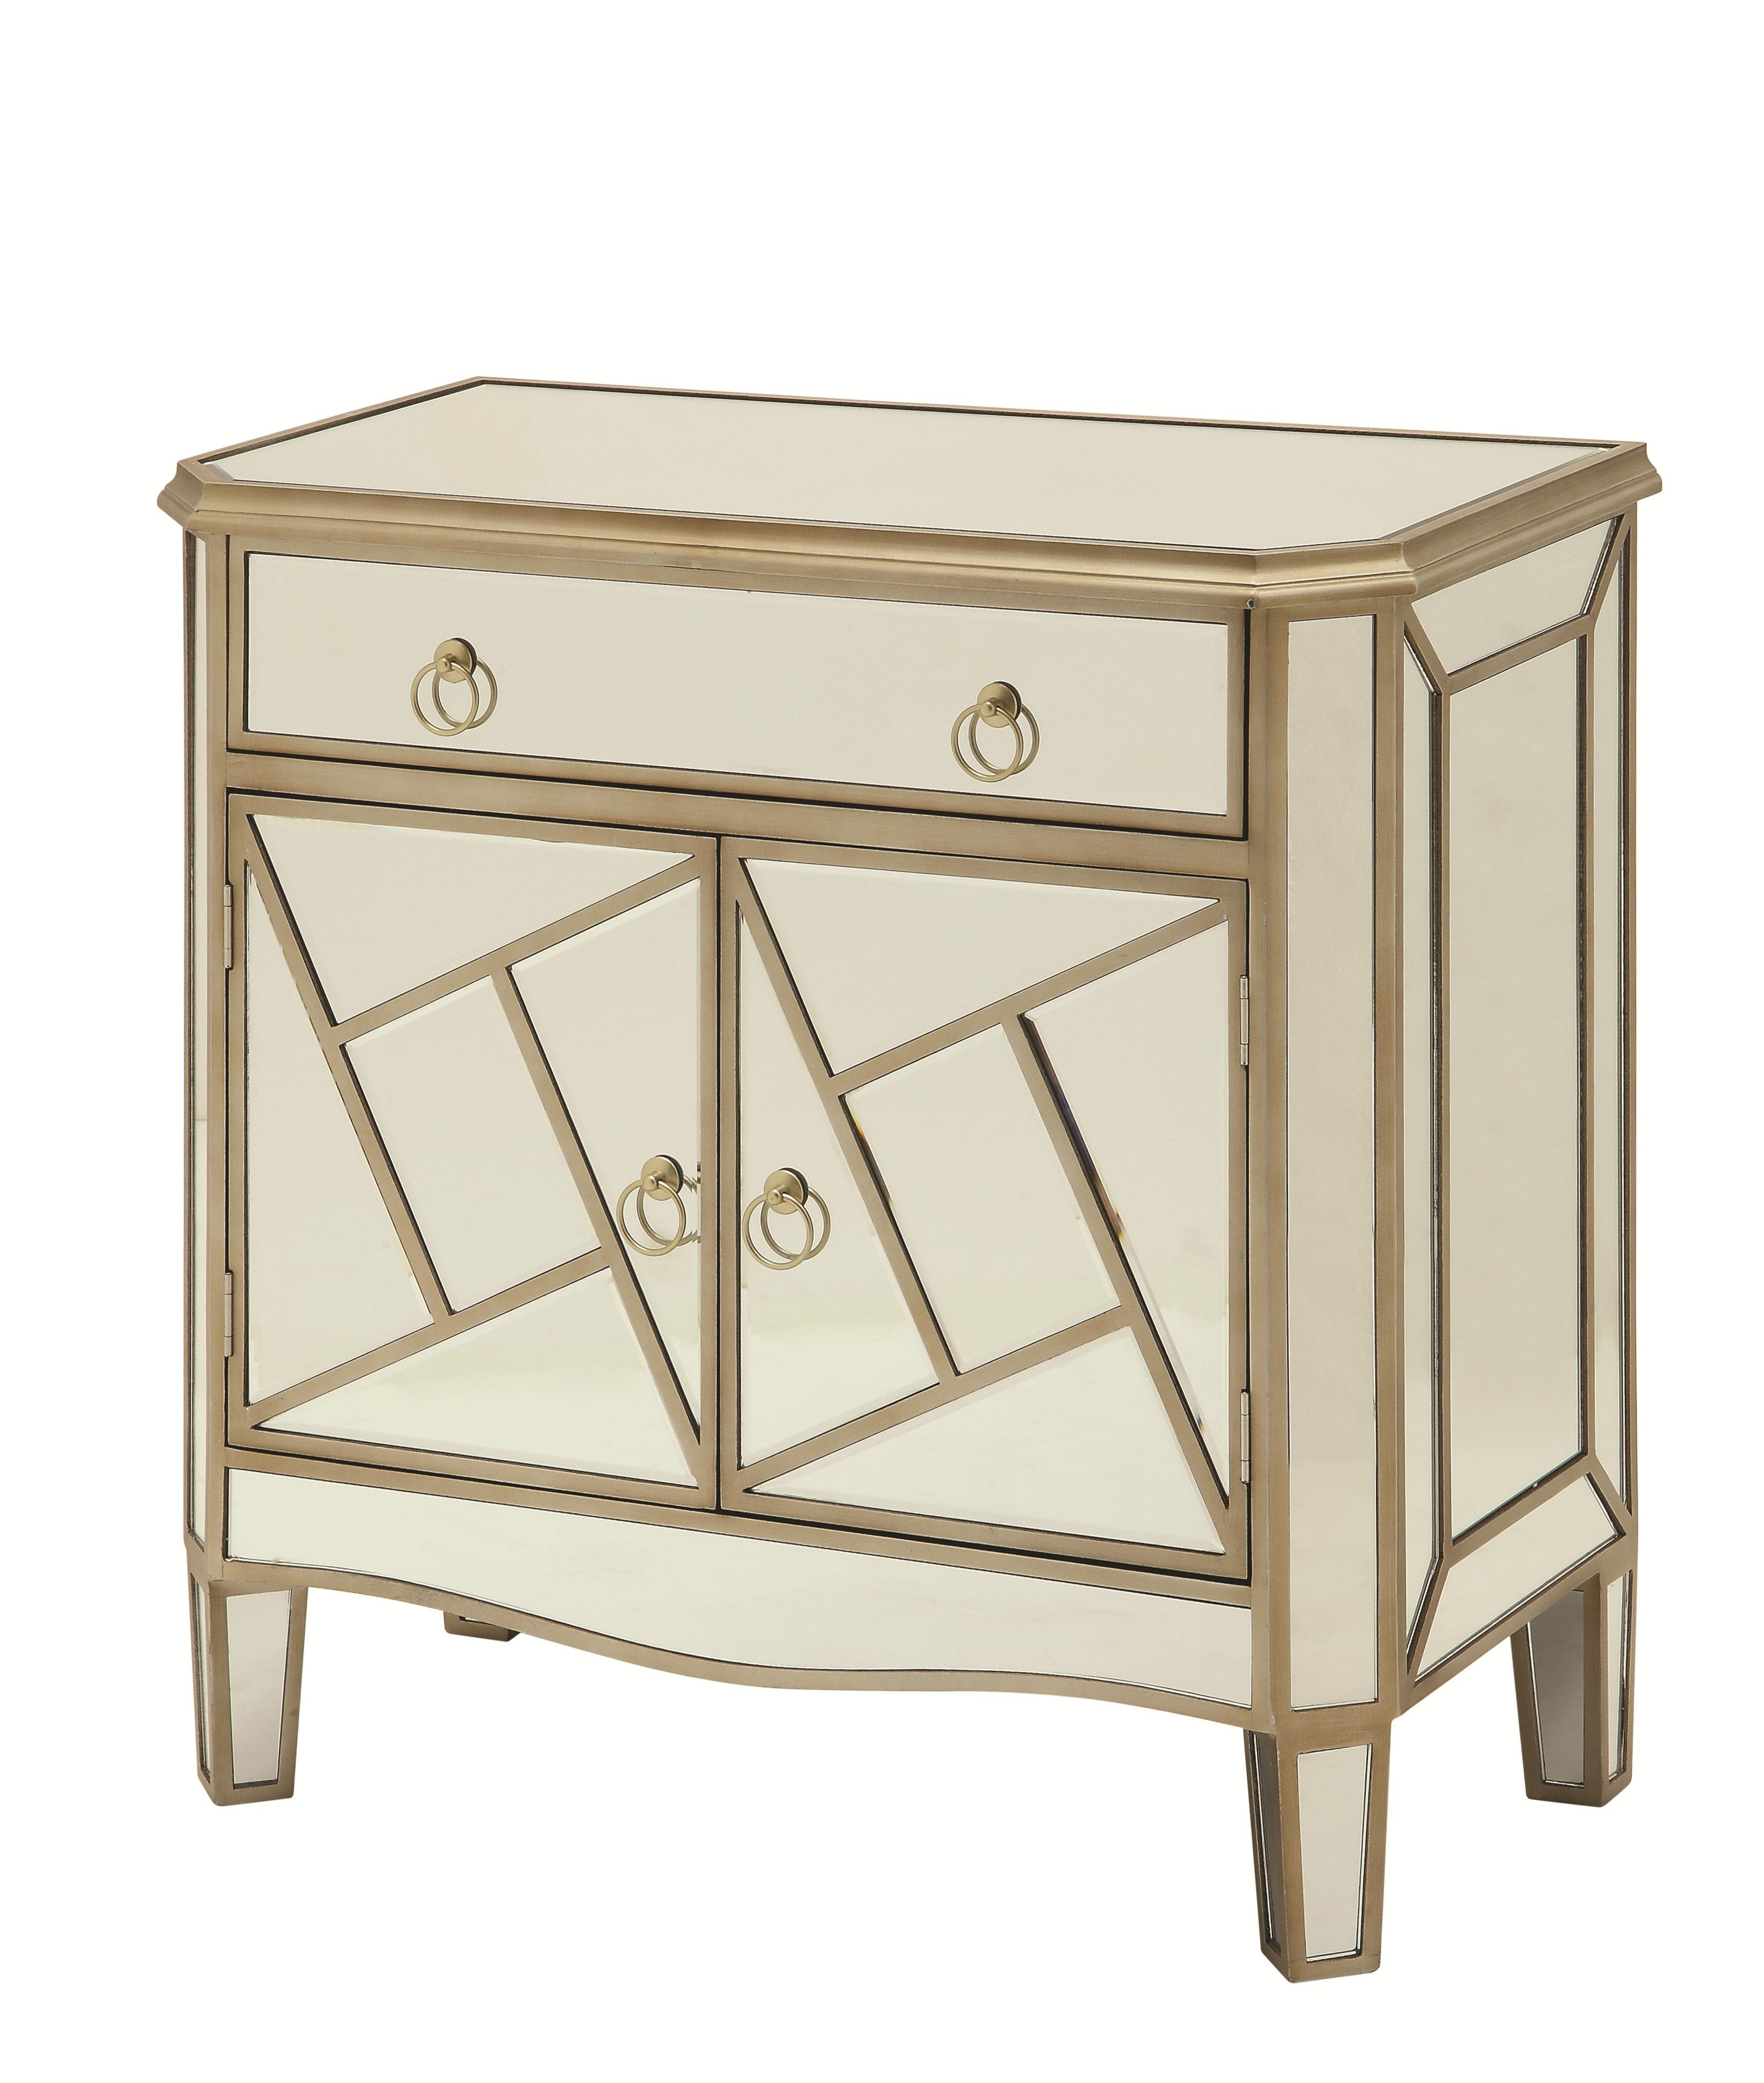 furniture gorgeous accent cabinets with special classic design for geometrical mirrored console table small chest threshold cabinet hollywood drawers hallway smal dining room